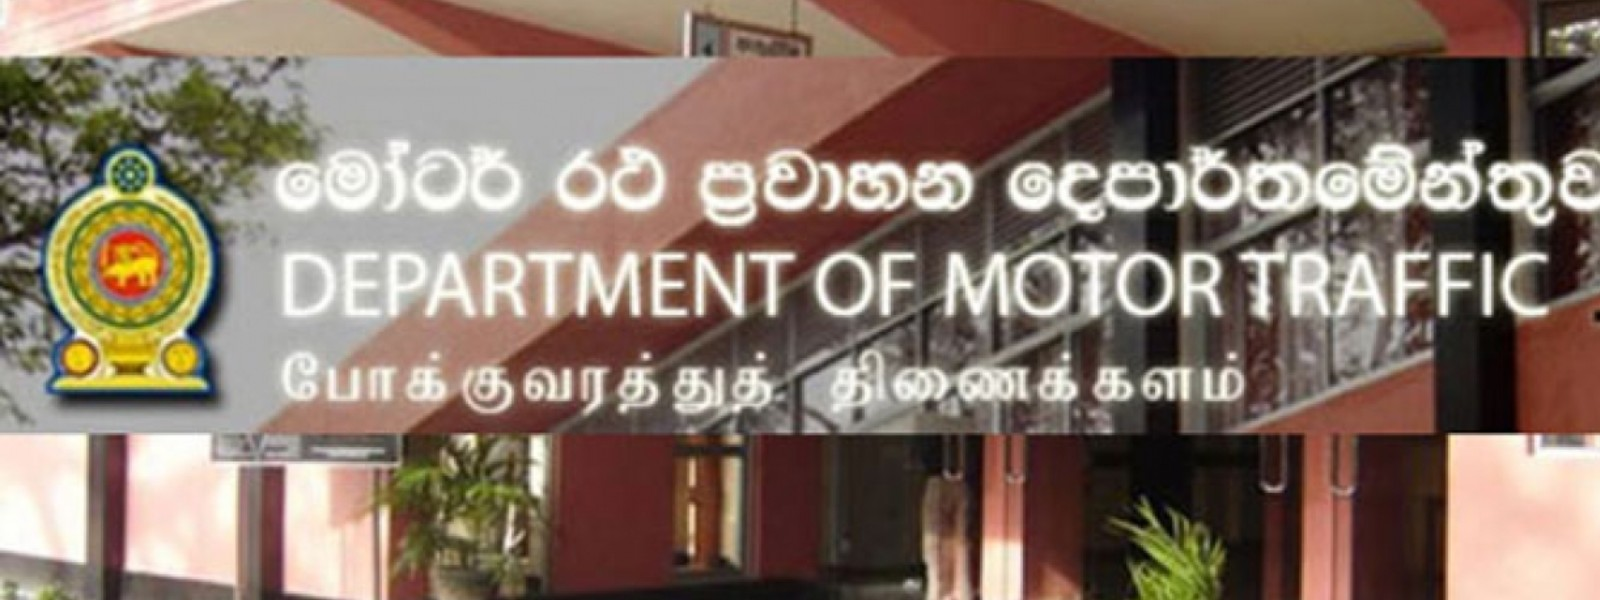 Department of Motor Traffic will resume services via appointment basis